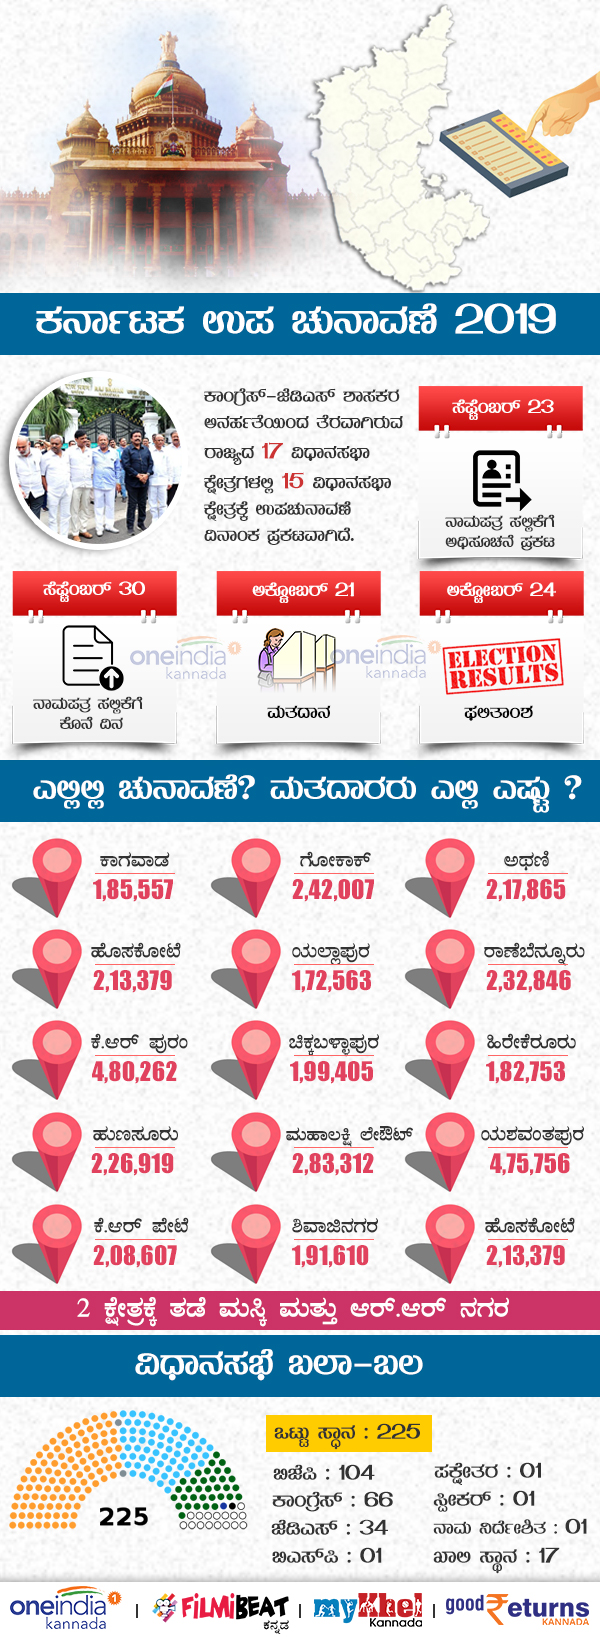 Infographics: By-elections to be held in Karnataka on October 21